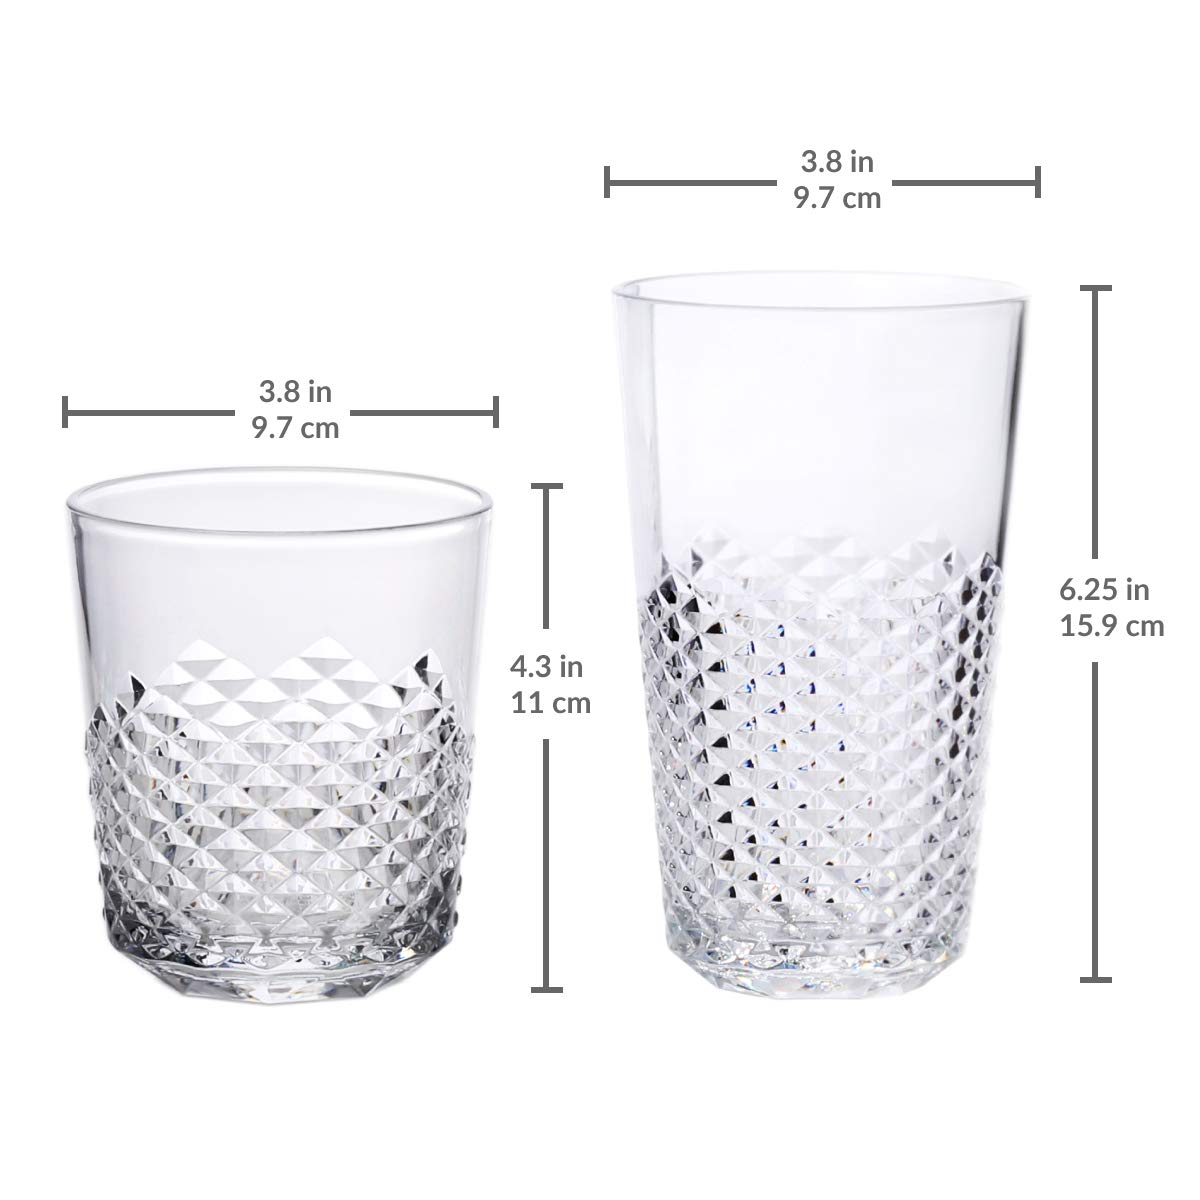 Cupture Diamond Plastic Tumblers BPA Free, 24 oz / 14 oz, 8-Pack (Clear) by Cupture (Image #7)